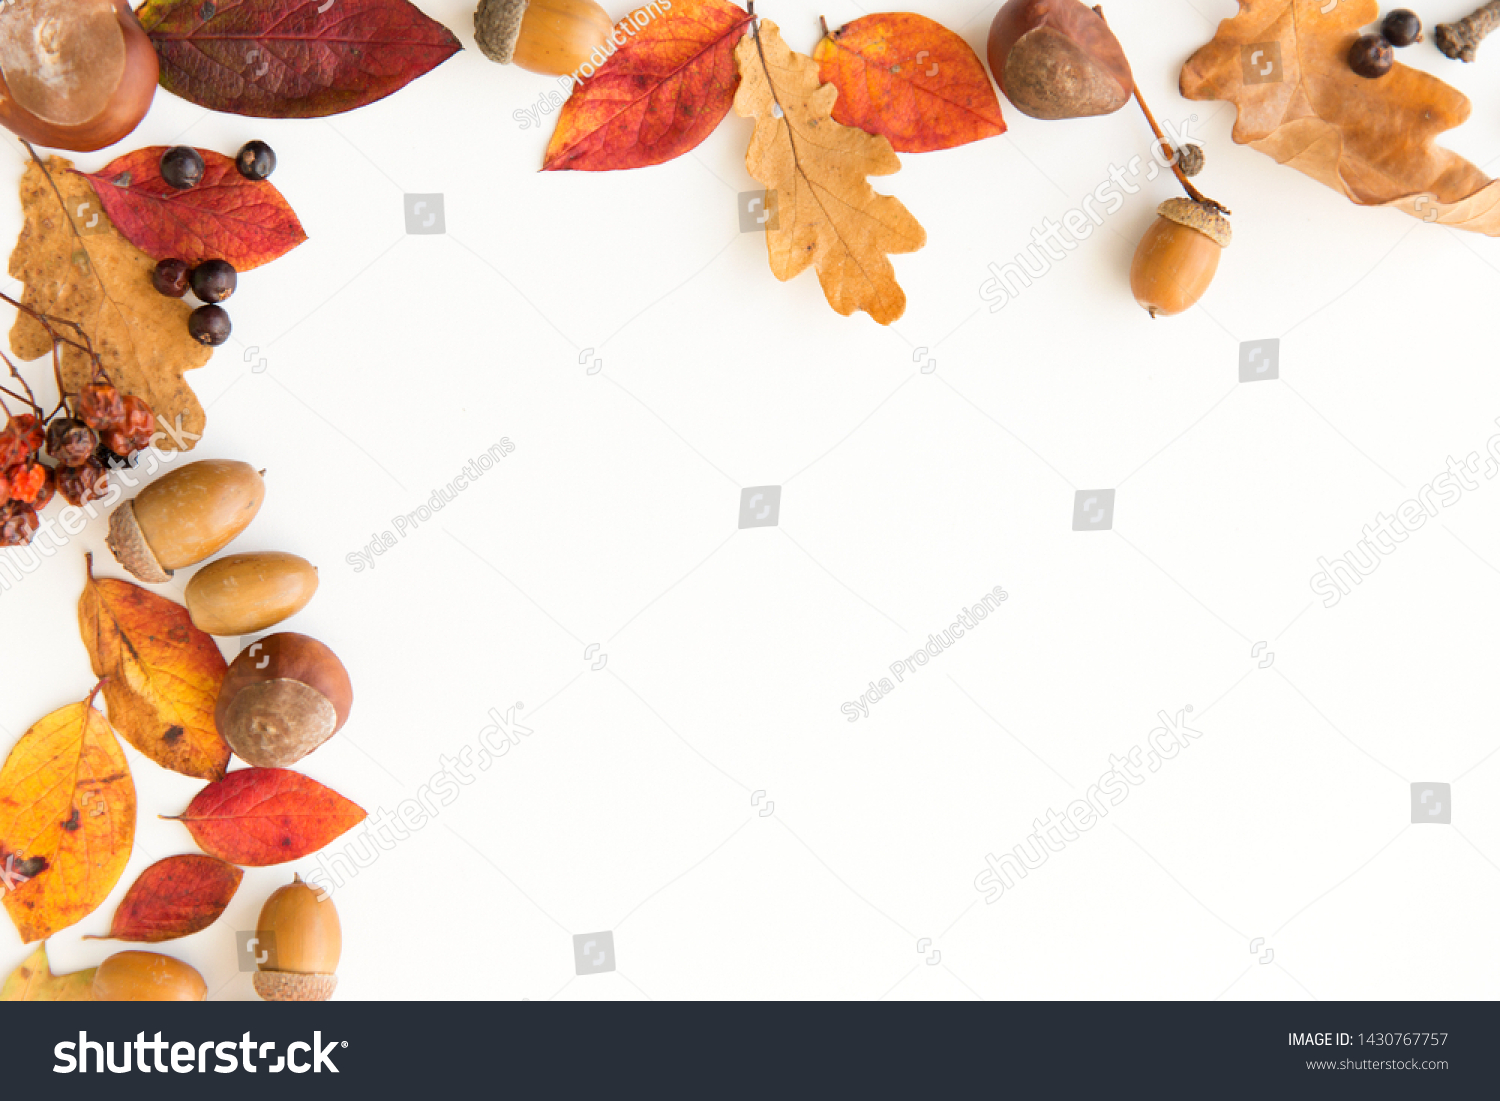 nature, season and botany concept - frame of different dry fallen autumn leaves, chestnuts, acorns and berries on white background #1430767757